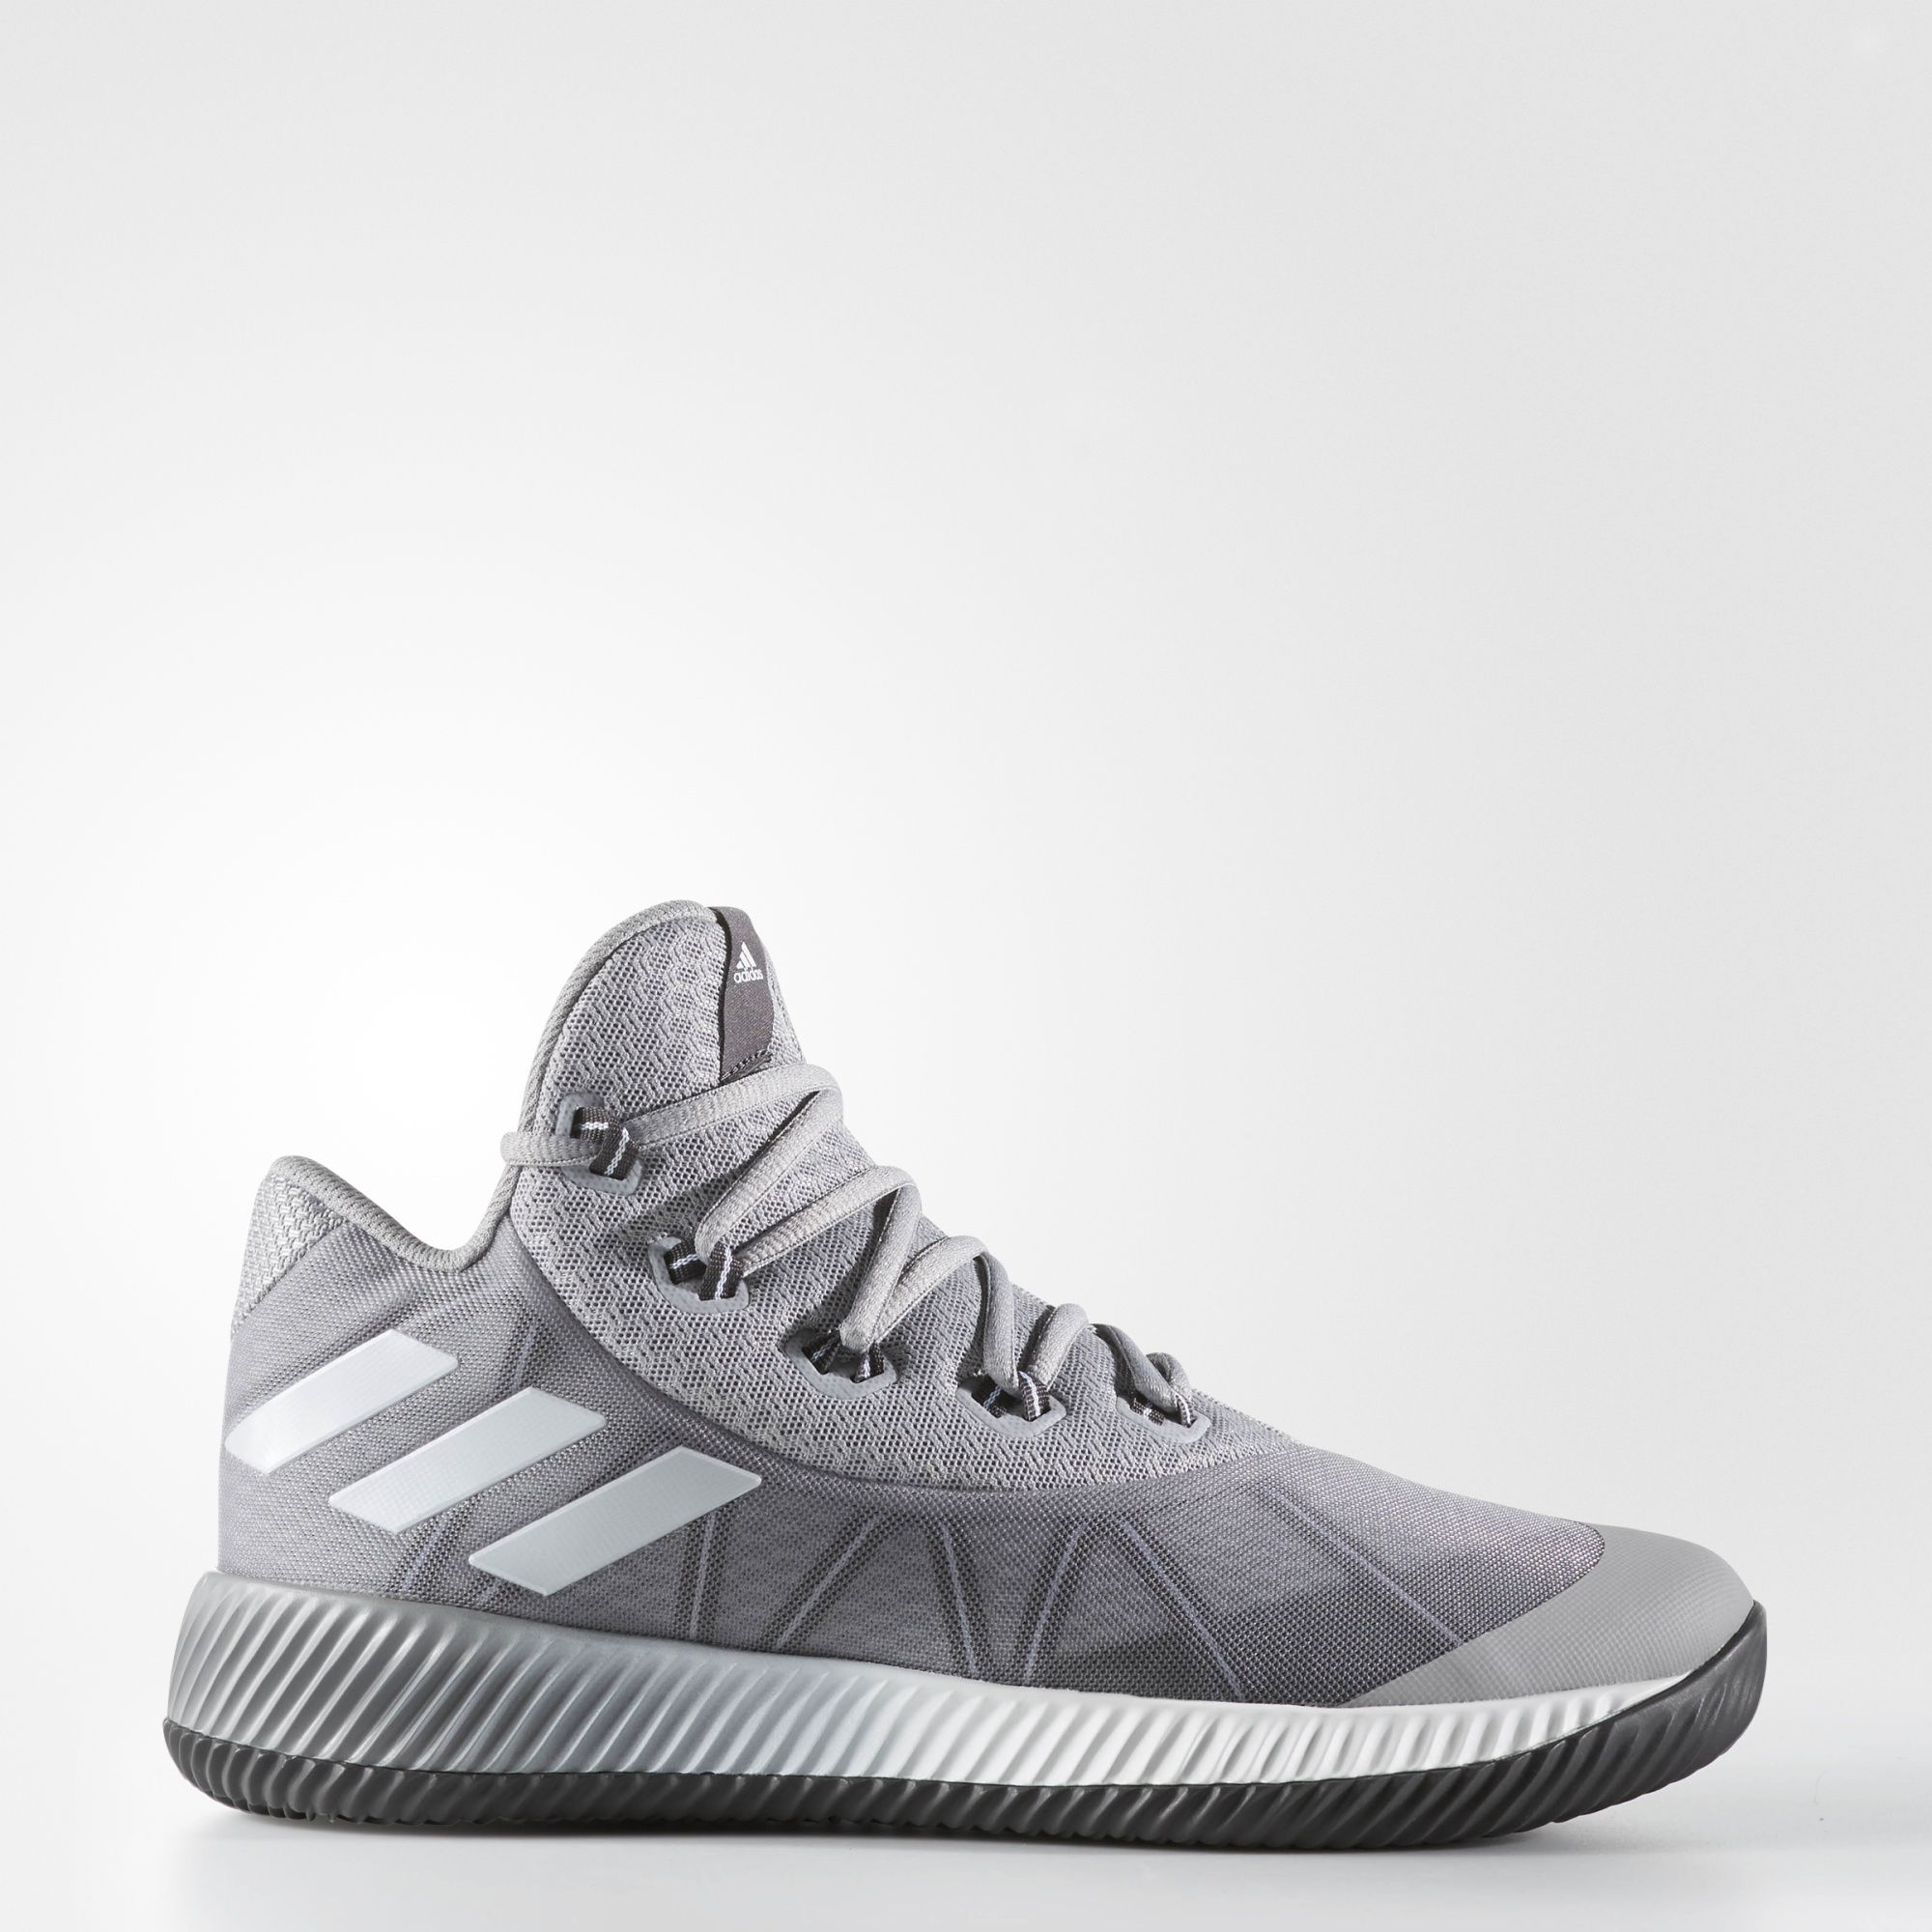 Best Shoes For Walking And Light Running